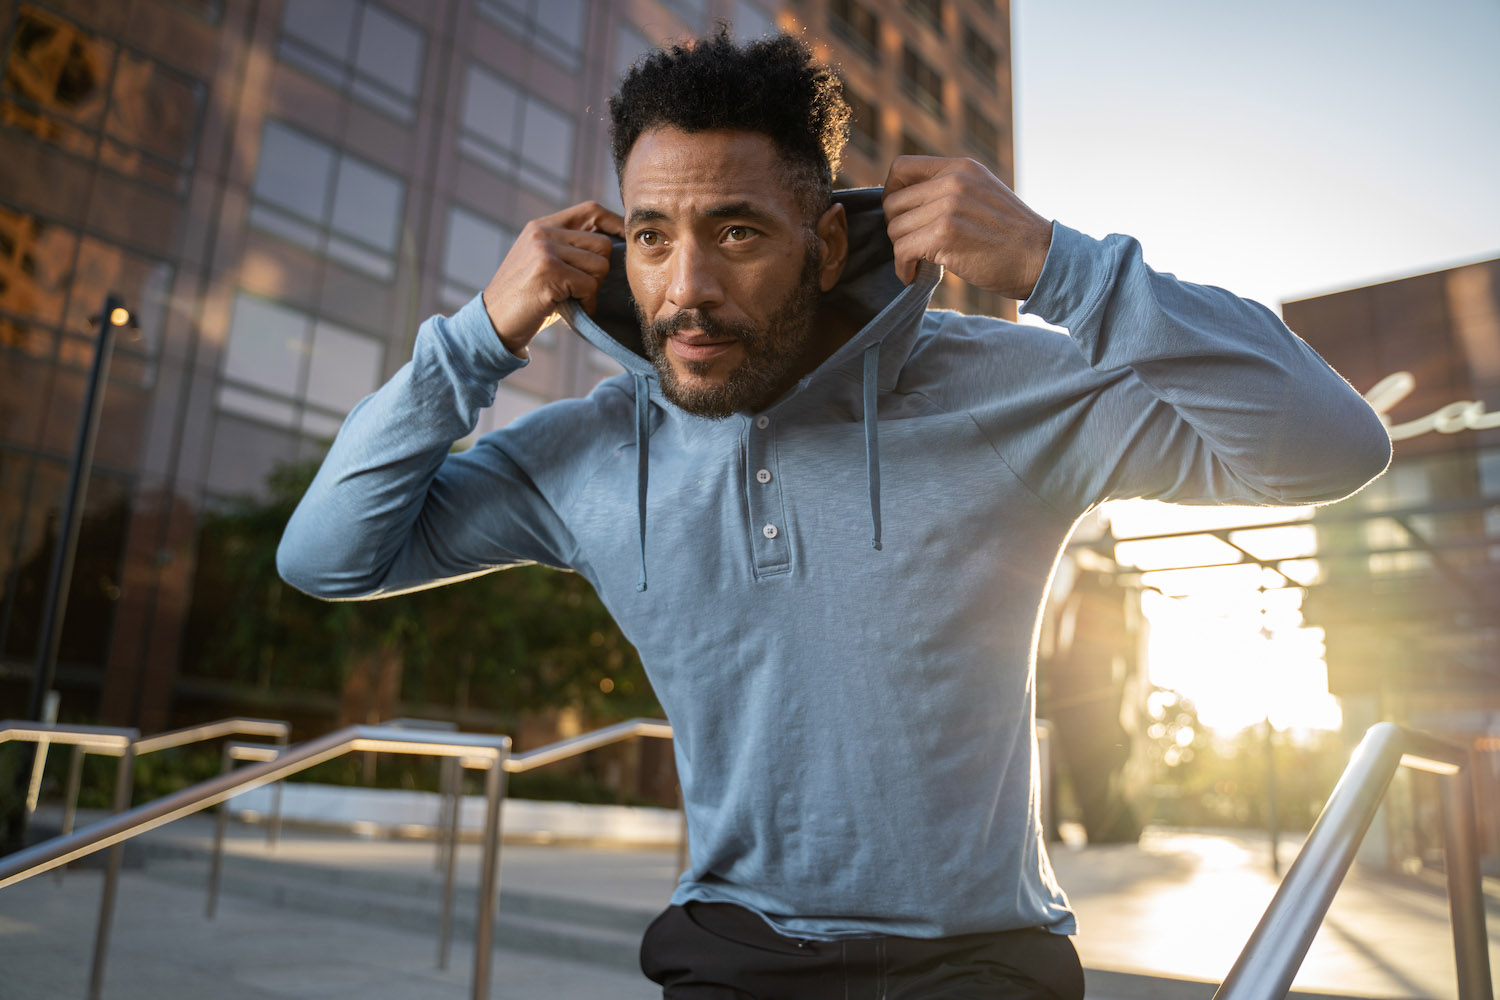 Lifestyle-On-Location-Model-Onmodel-Damion-Lloyd-Photography-Commercial-Product-Apparel-Clothing-Los-Angeles-Orange-County-male-man-GLYDER-sportswear-outdoor-city-blue-hoodie-sunset